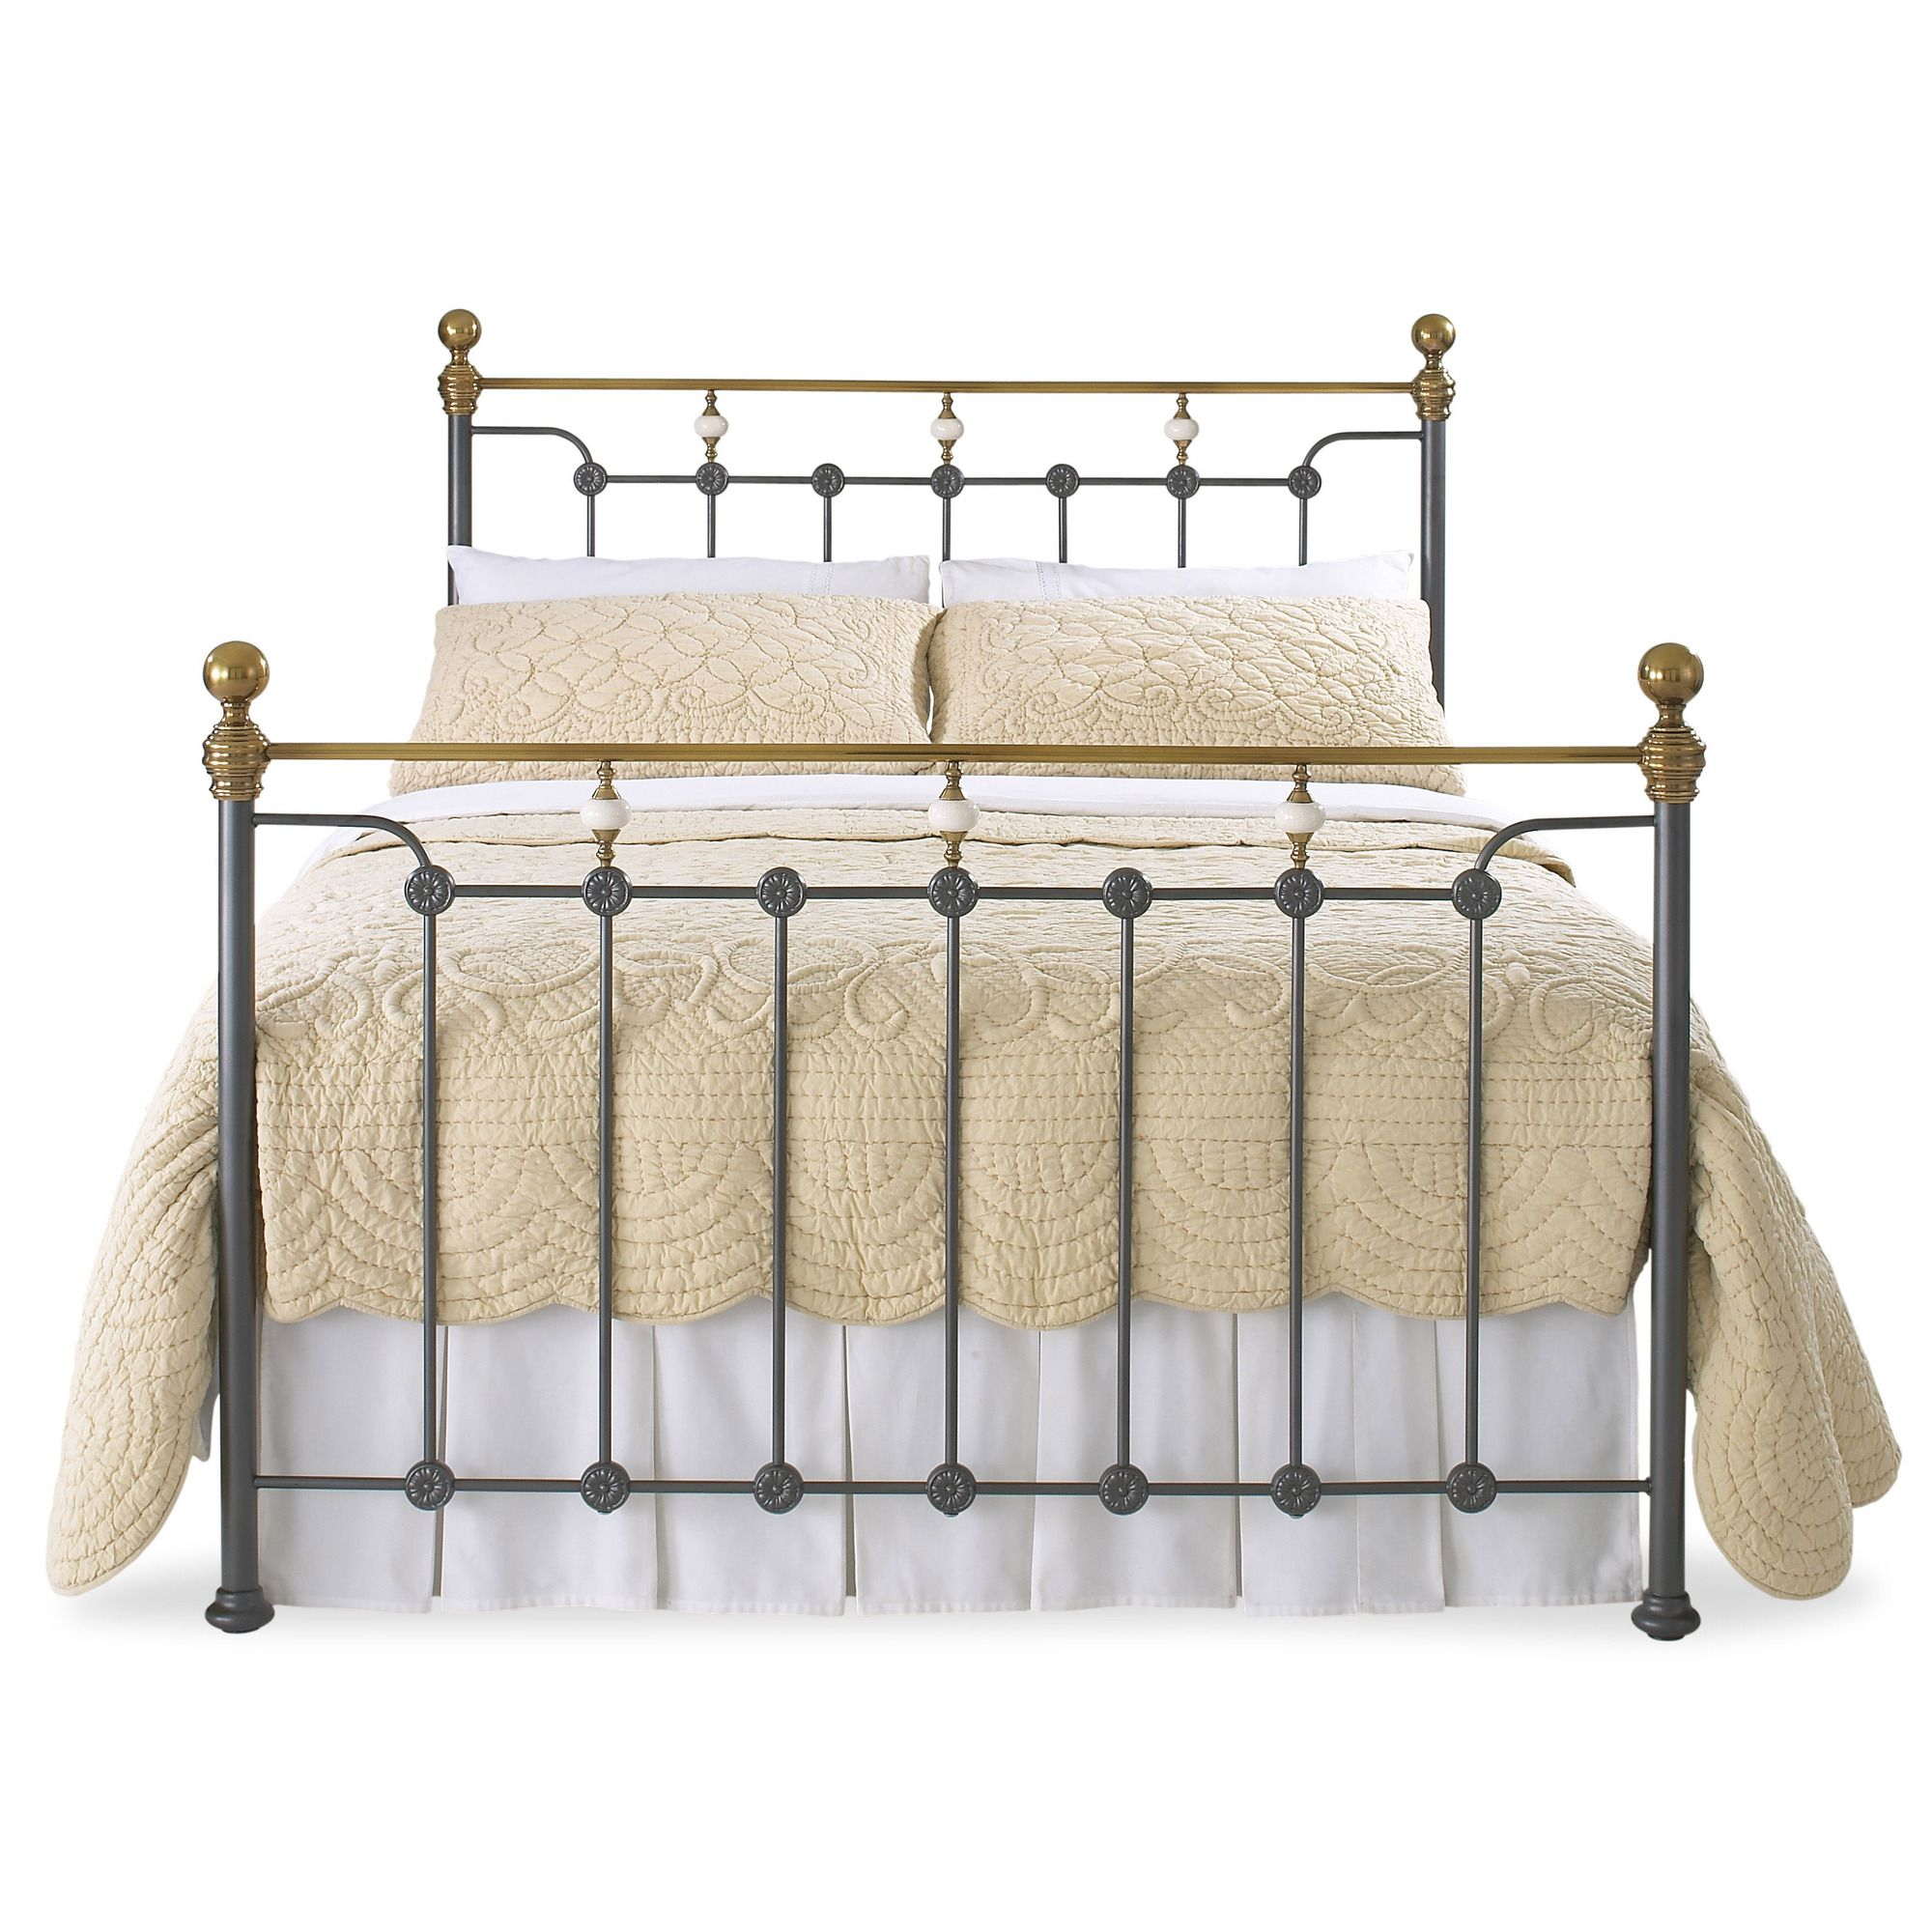 OBC Glenholm Bed Frame - Double - Pewter at Tesco Direct